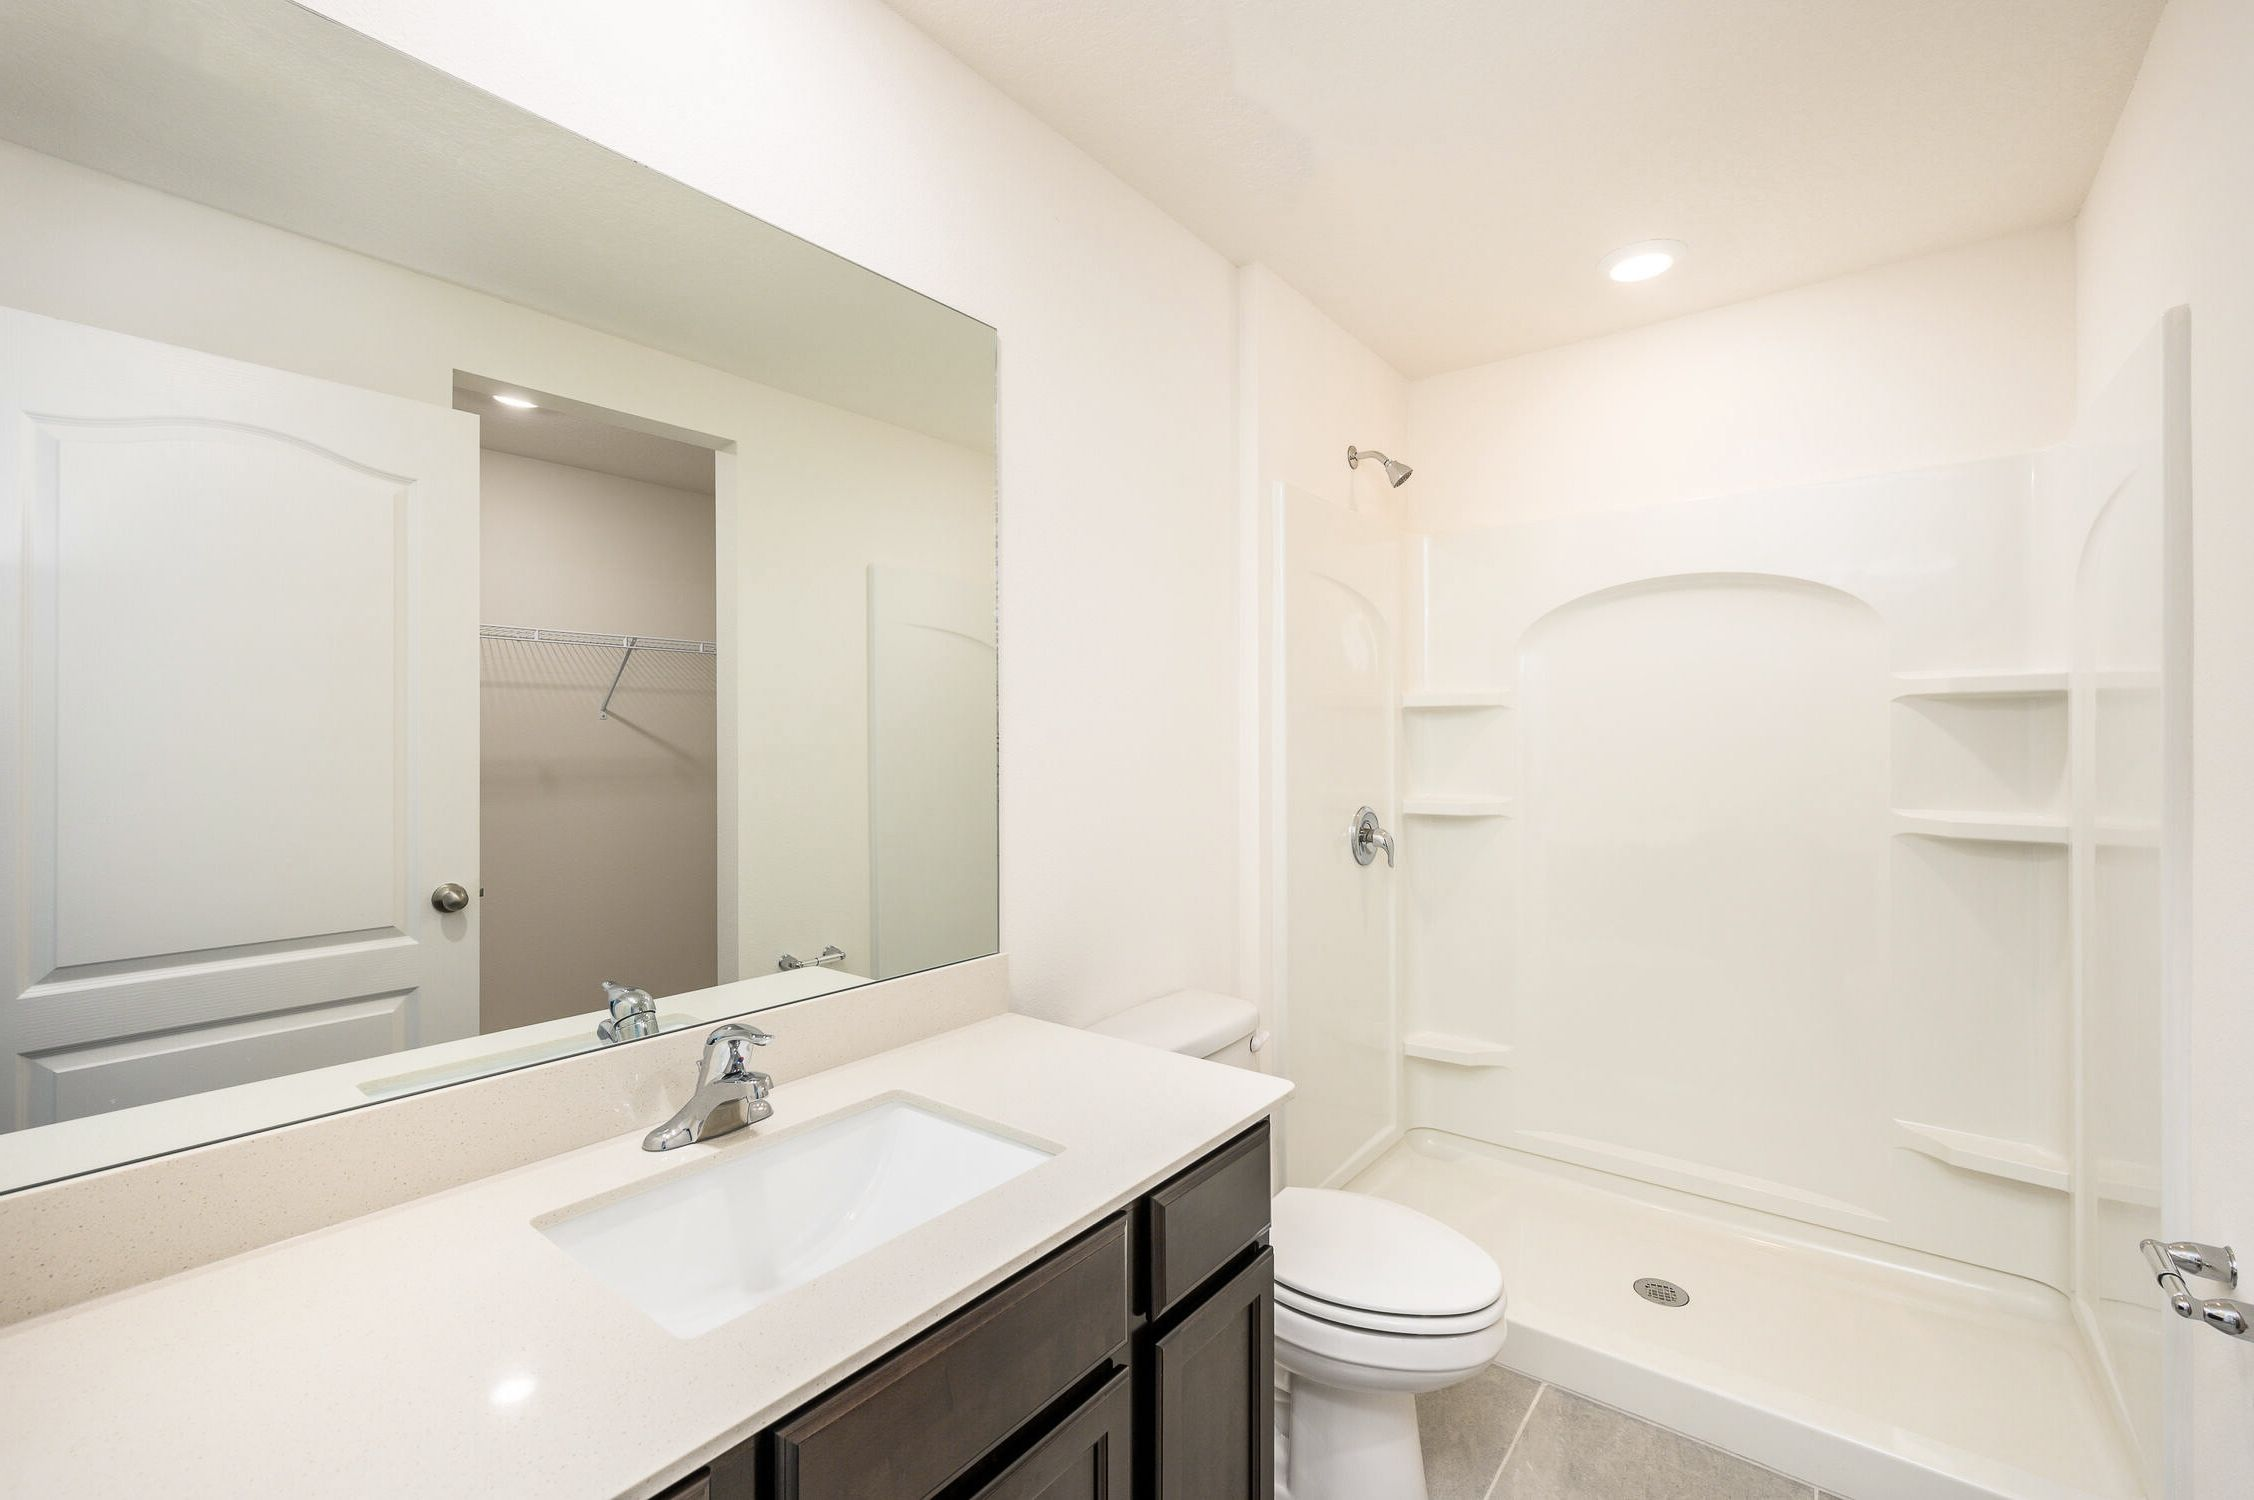 Bathroom featured in the Vero By LGI Homes in Melbourne, FL